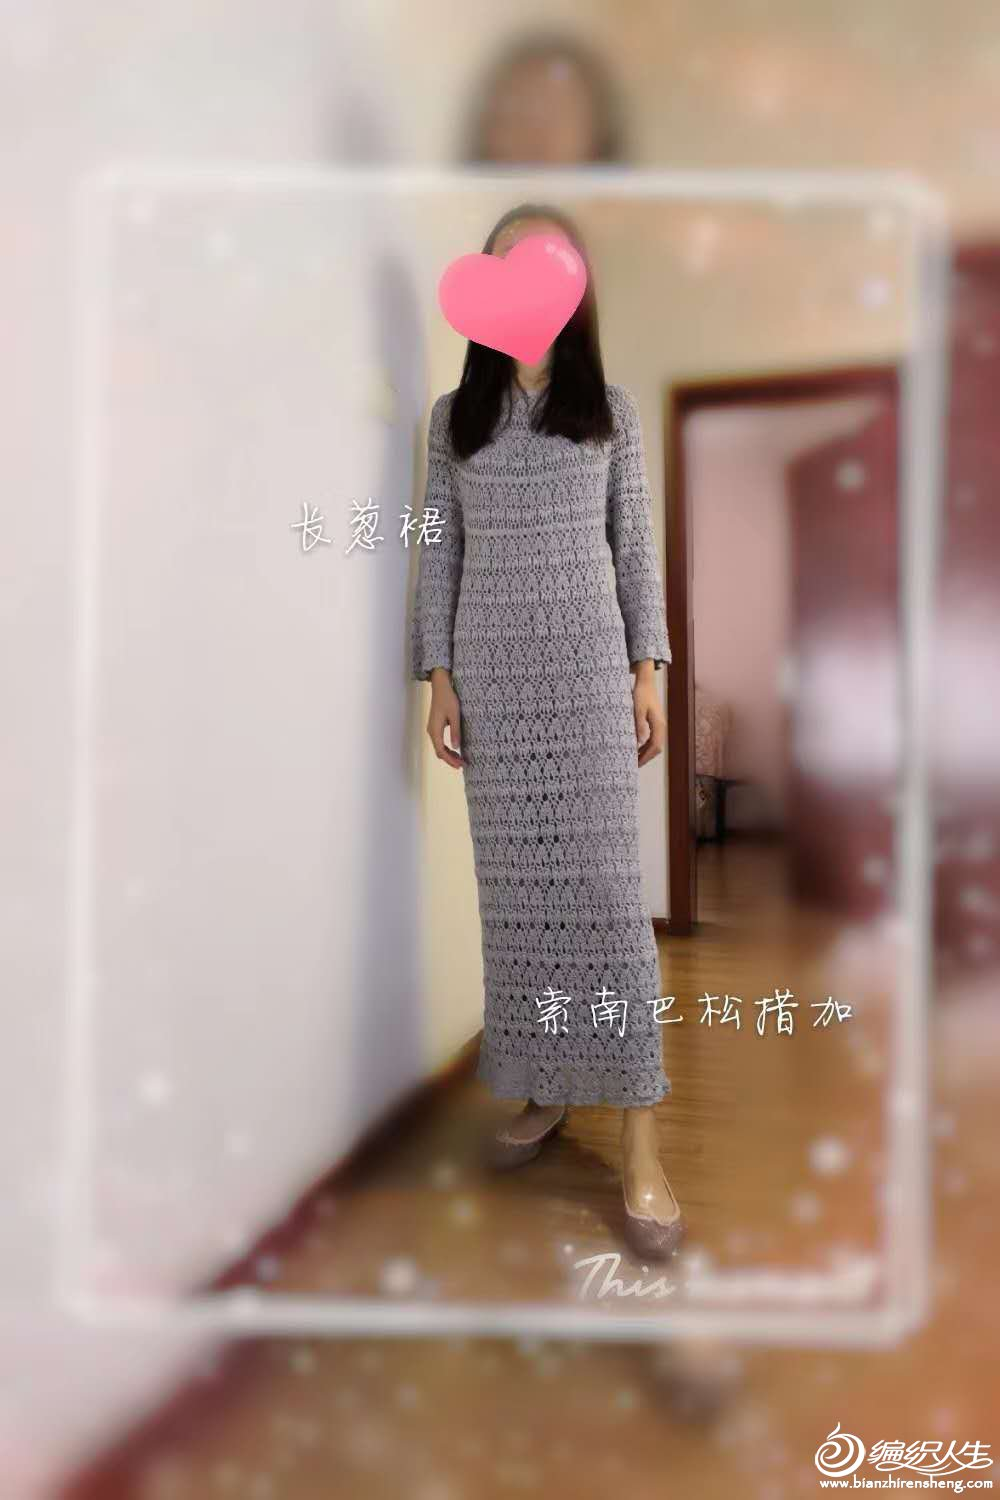 wechat_upload15415703455be27f296a5e8